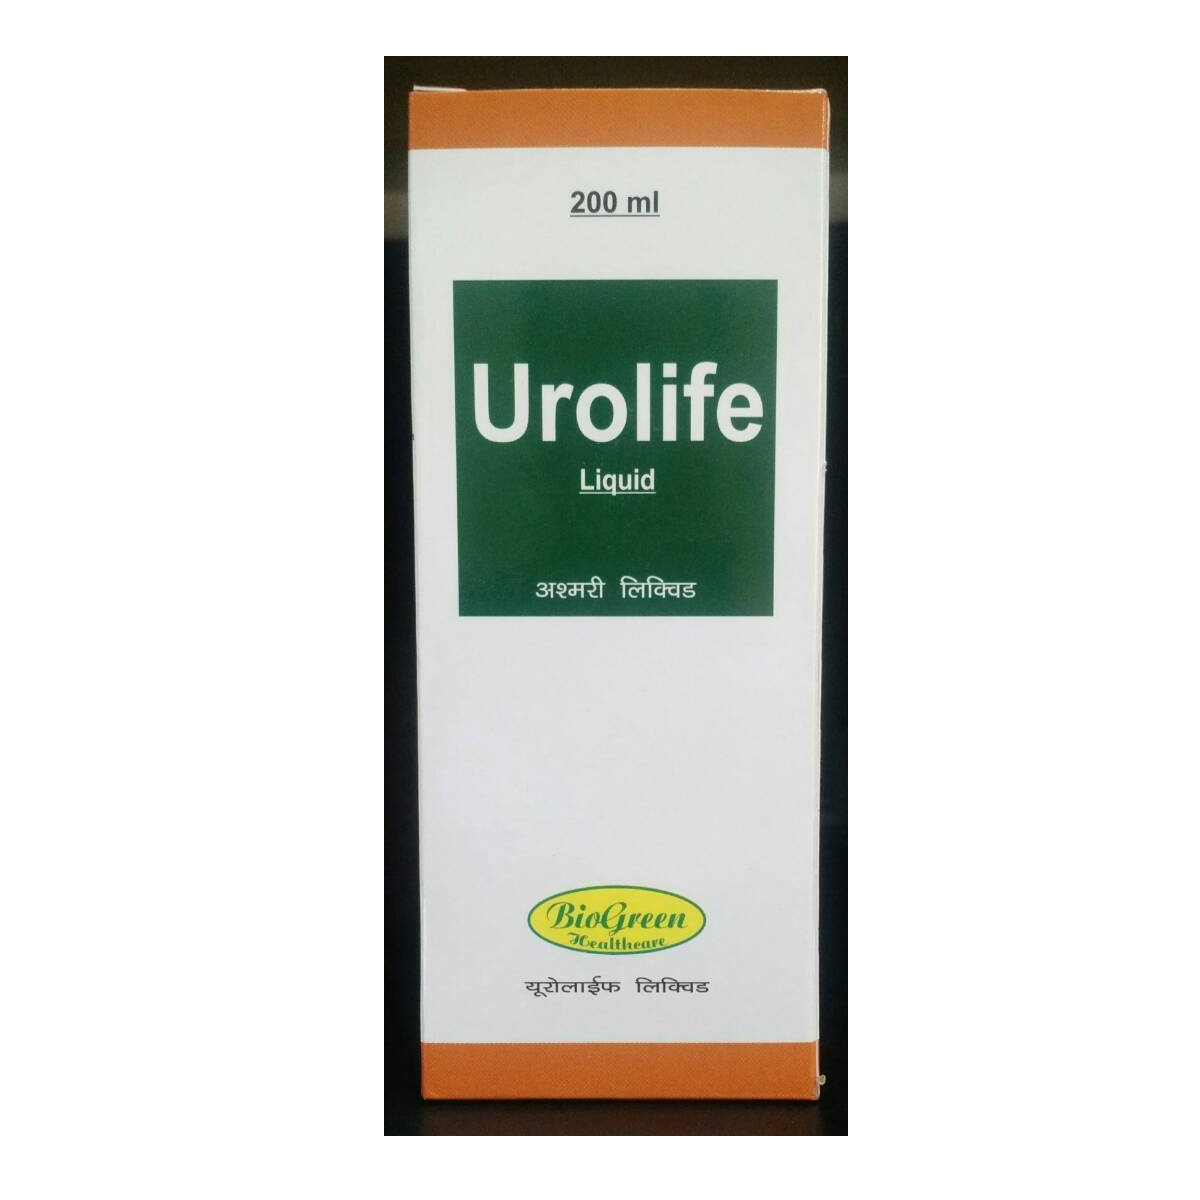 Urolife Liquid In Arunachal Pradesh